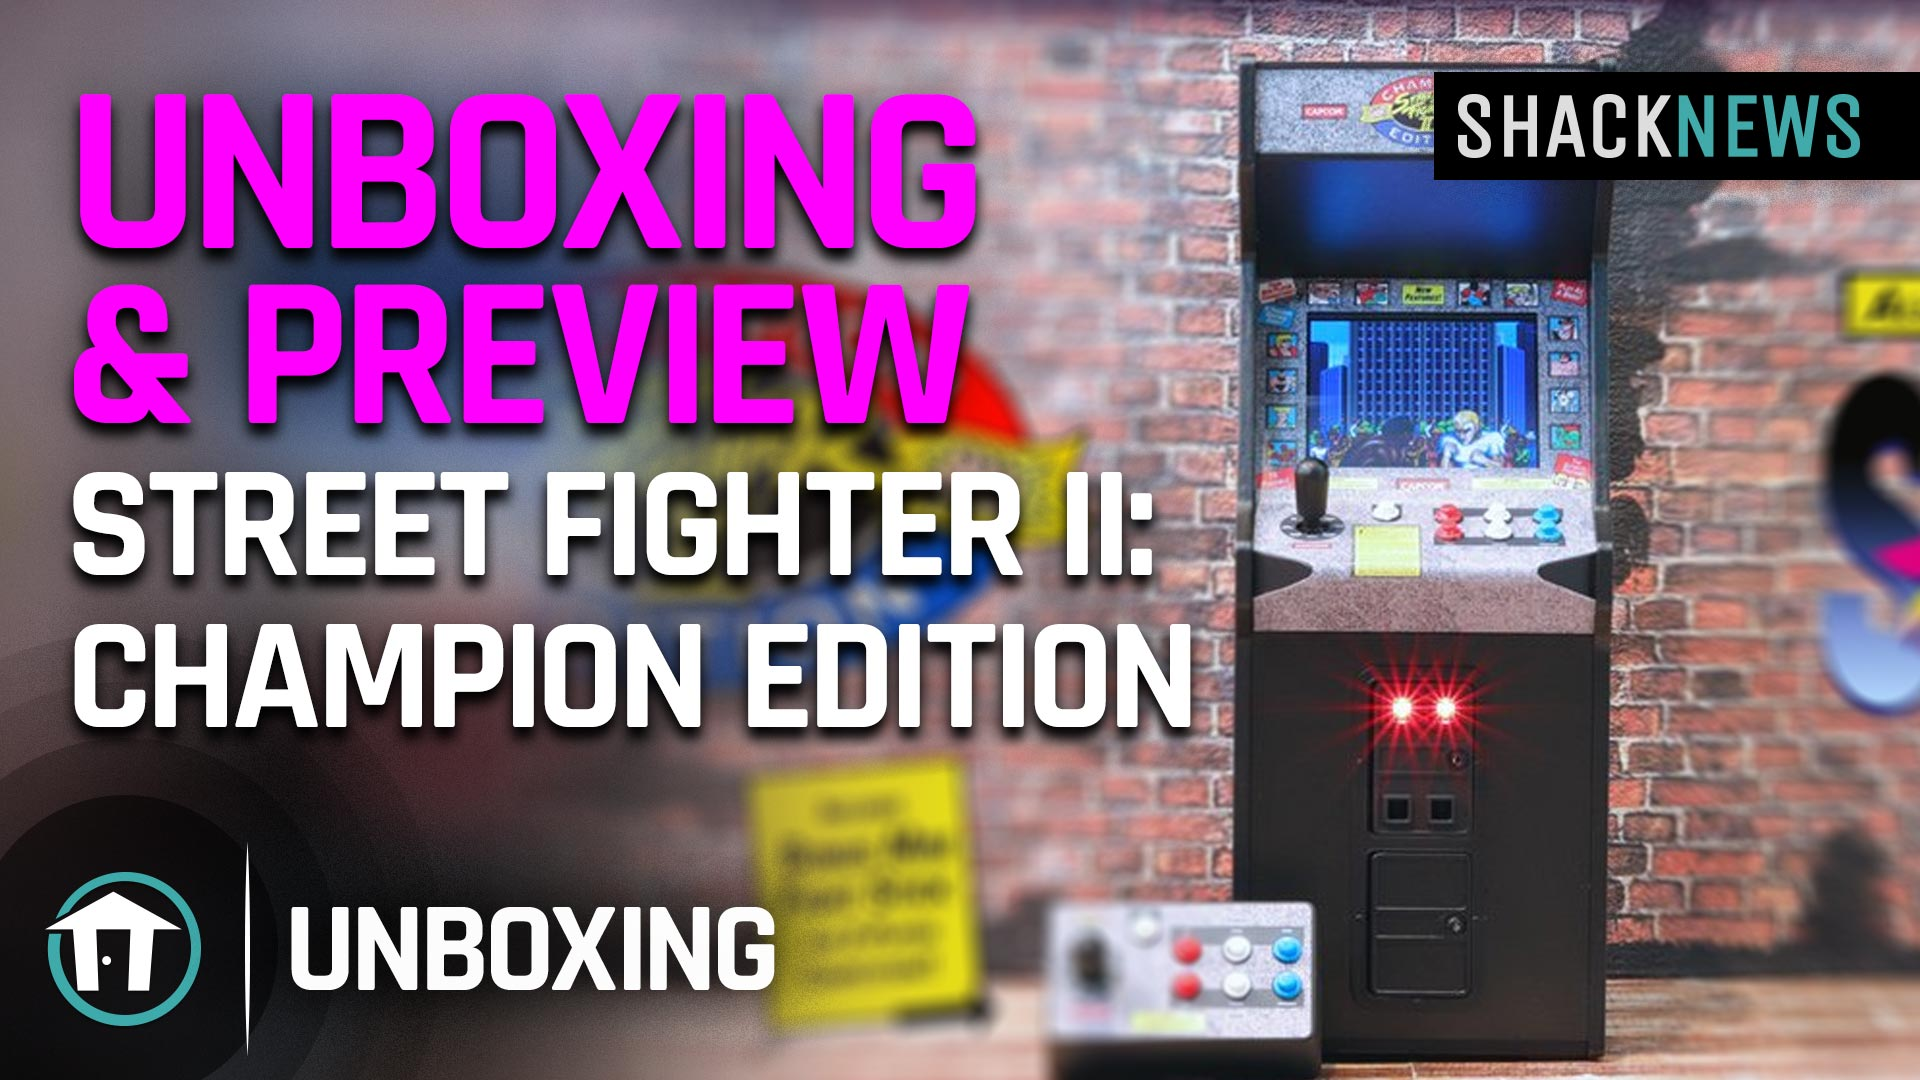 Unboxing Preview Street Fighter 2 Champion Edition Shacknews